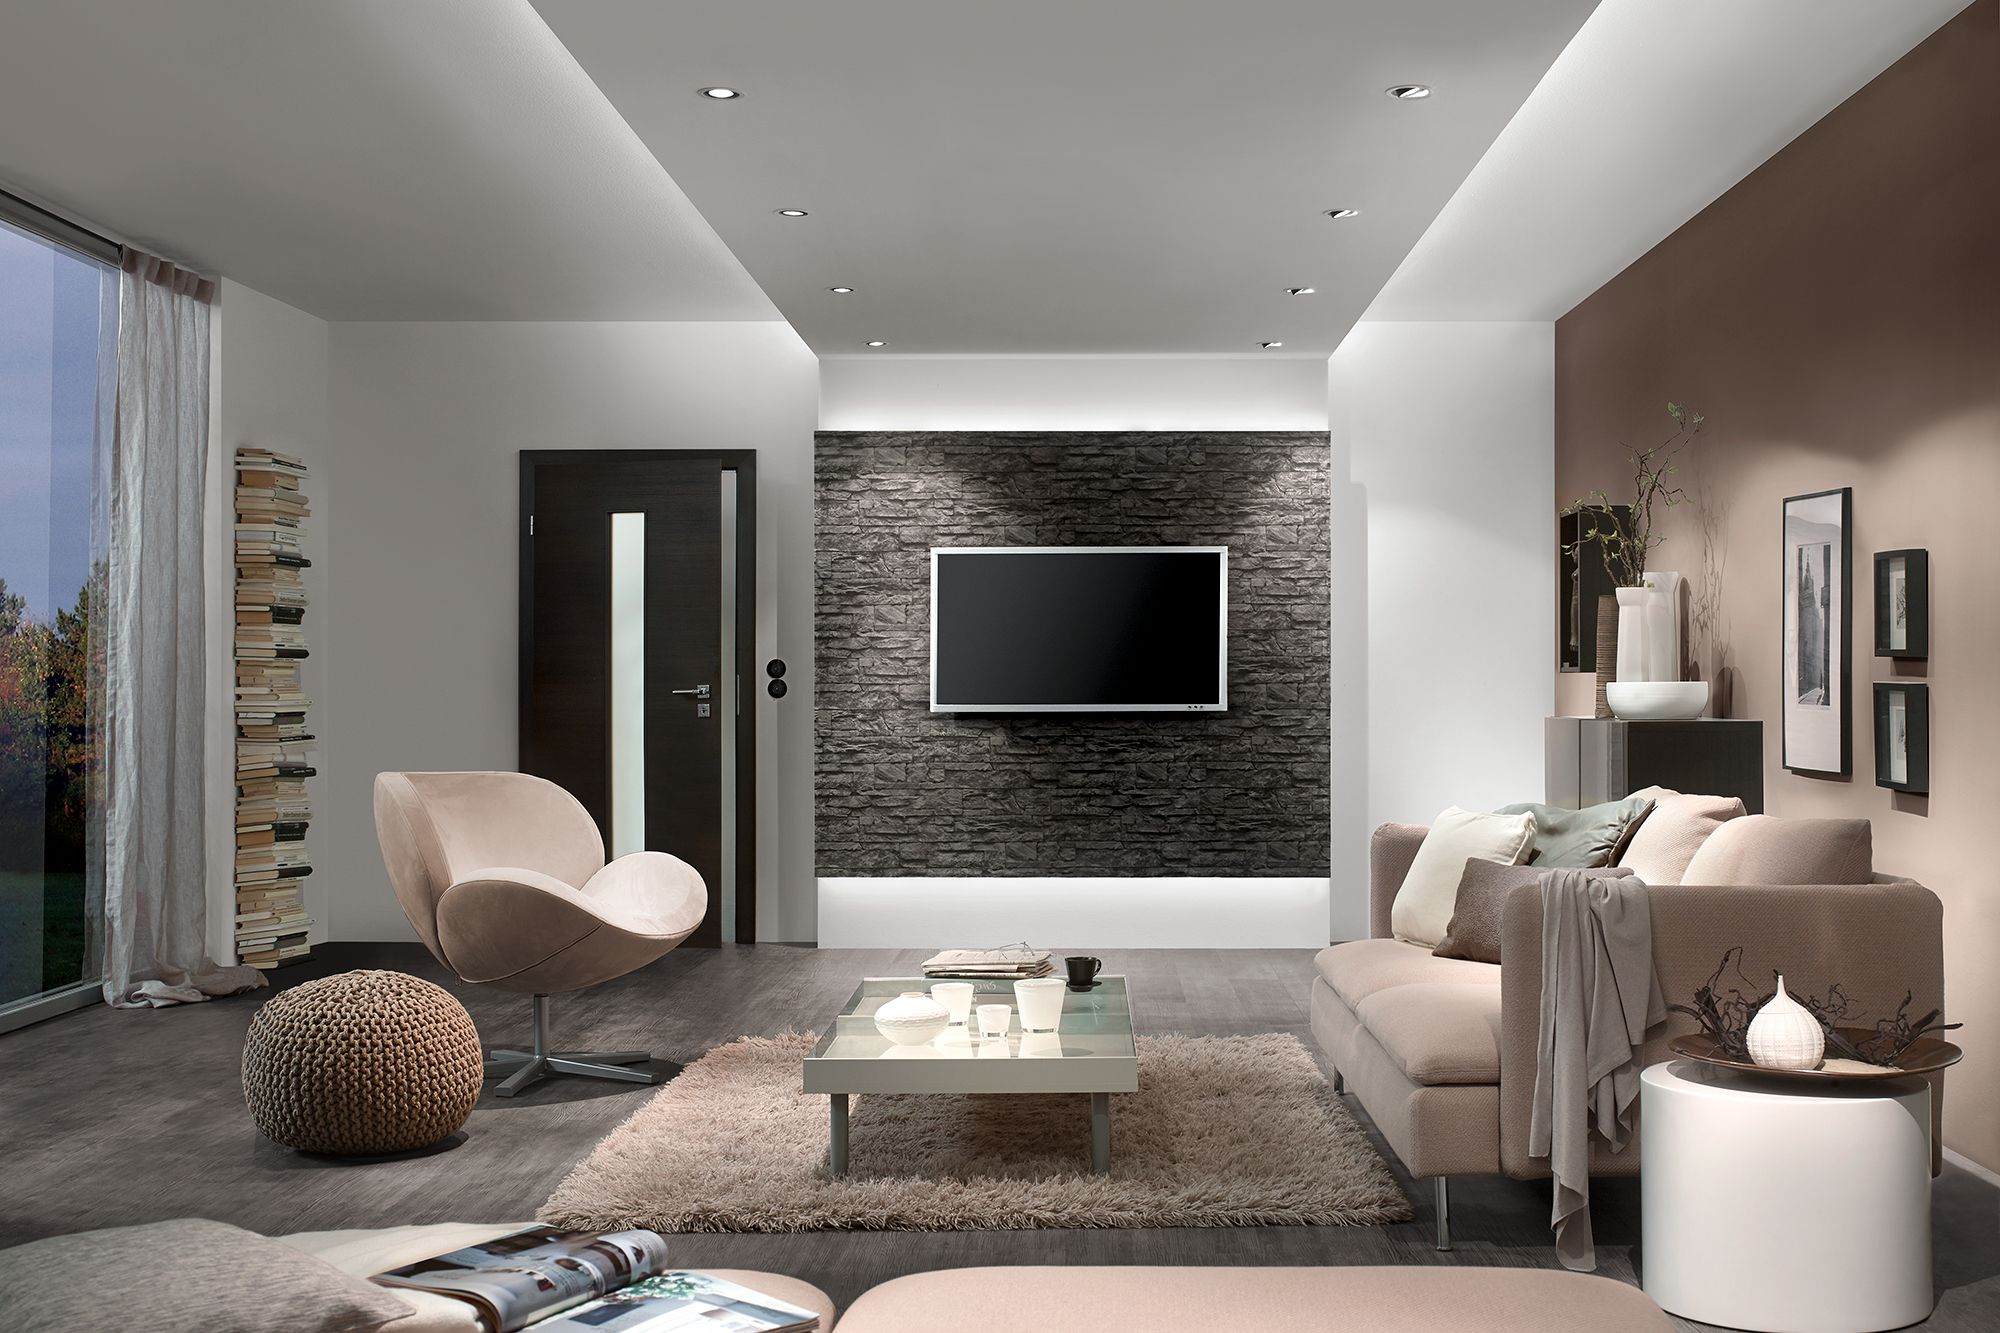 Full Size of Led Beleuchtung Wohnzimmer Tipps Beleuchtung Wohnzimmer Led Spots Led Beleuchtung Wohnzimmer Farbwechsel Led Beleuchtung Wohnzimmer Indirekt Wohnzimmer Led Beleuchtung Wohnzimmer